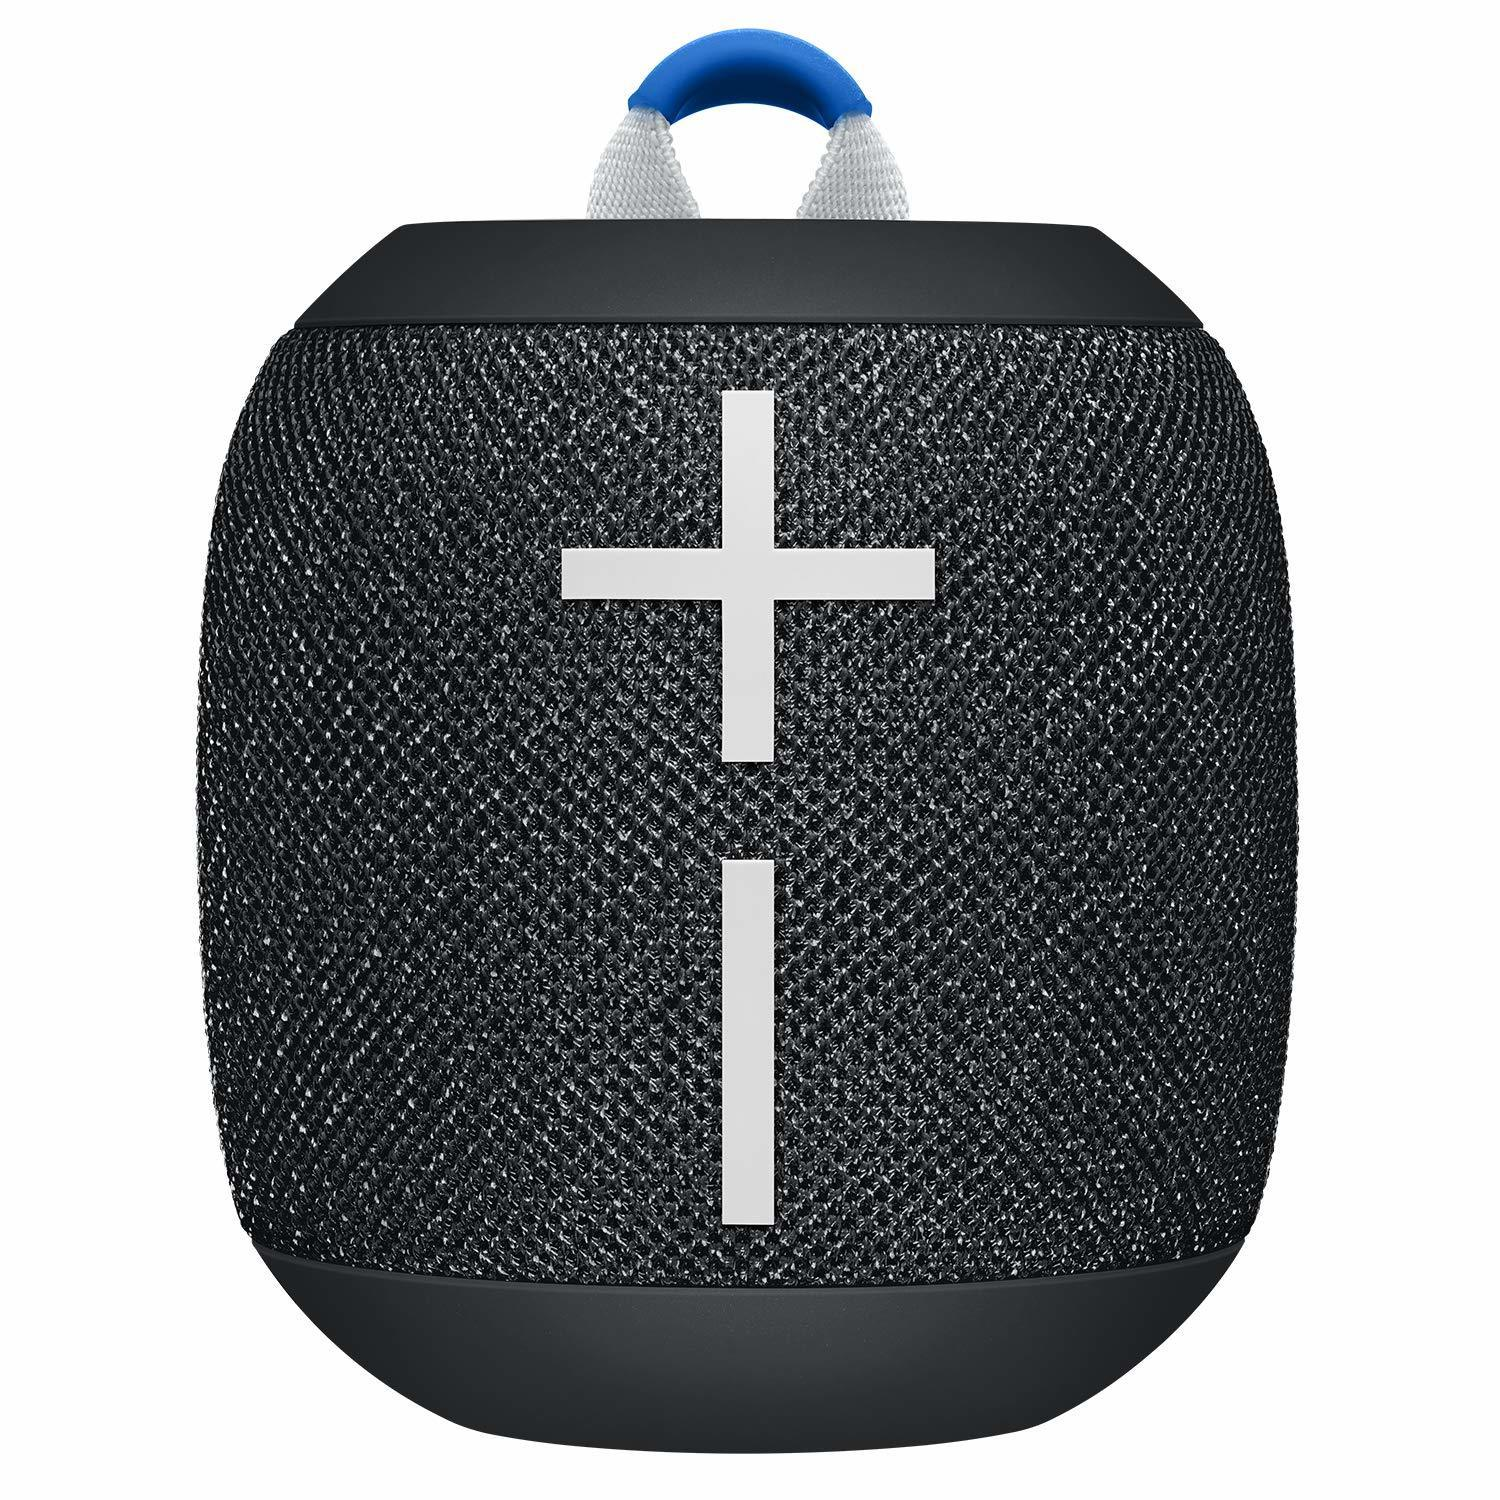 Ultimate Ears WONDERBOOM 2 Speakers - Black Twin Pack image